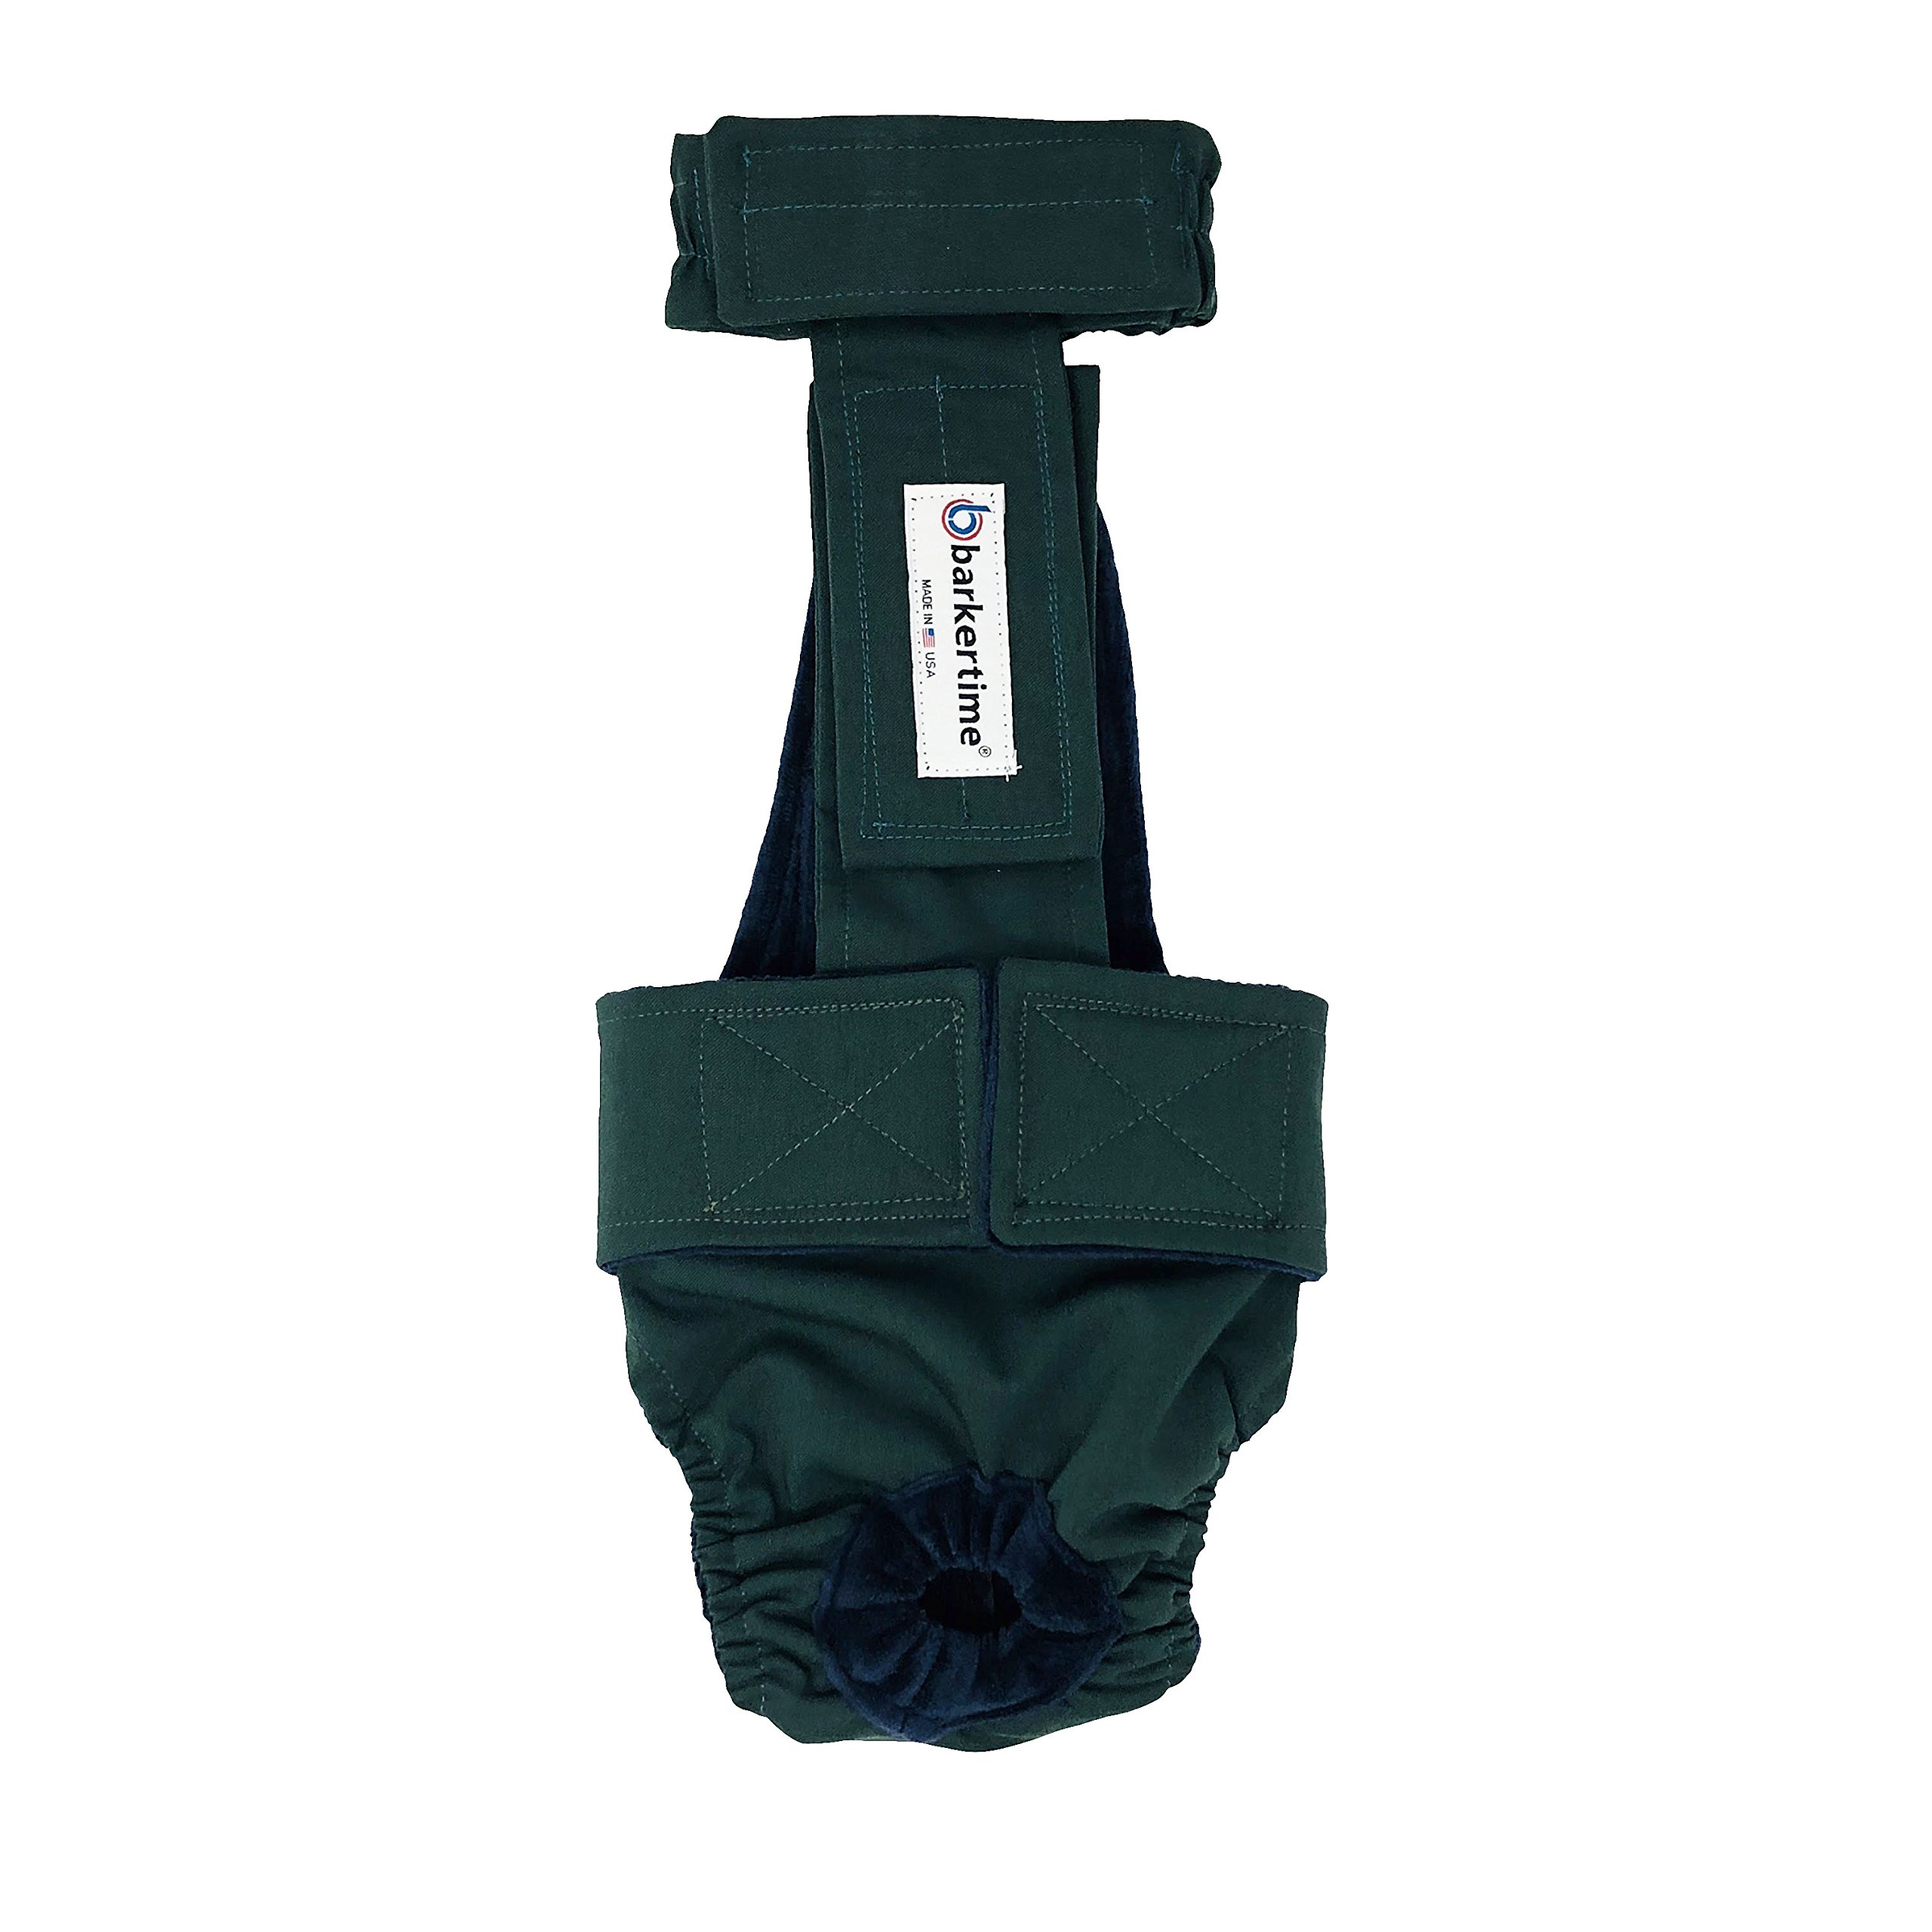 Barkertime Dog Diaper Overall - Made in USA - Hunter Green Escape-Proof Washable Dog Diaper Overall, XXL, Without Tail Hole for Dog Incontinence, Marking, Housetraining and Females in Heat by Barkertime